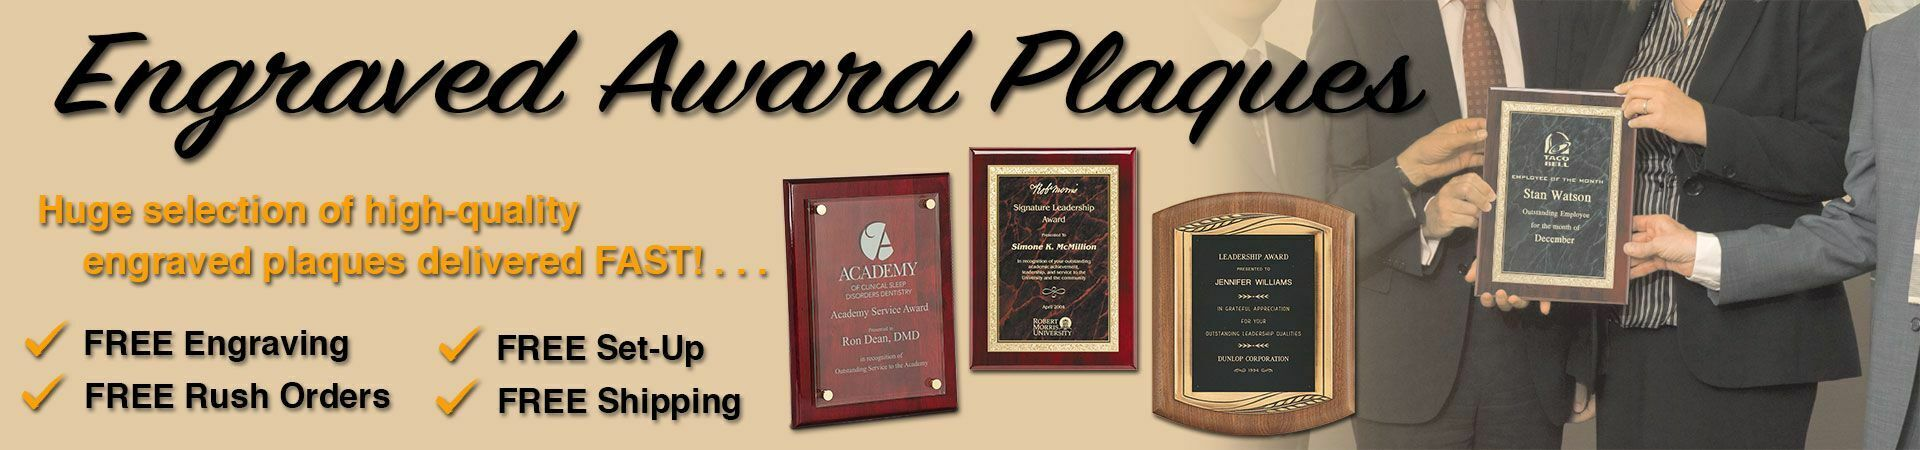 Engraved Award Plaques slider with image of corporate team holding an engraved award plaque